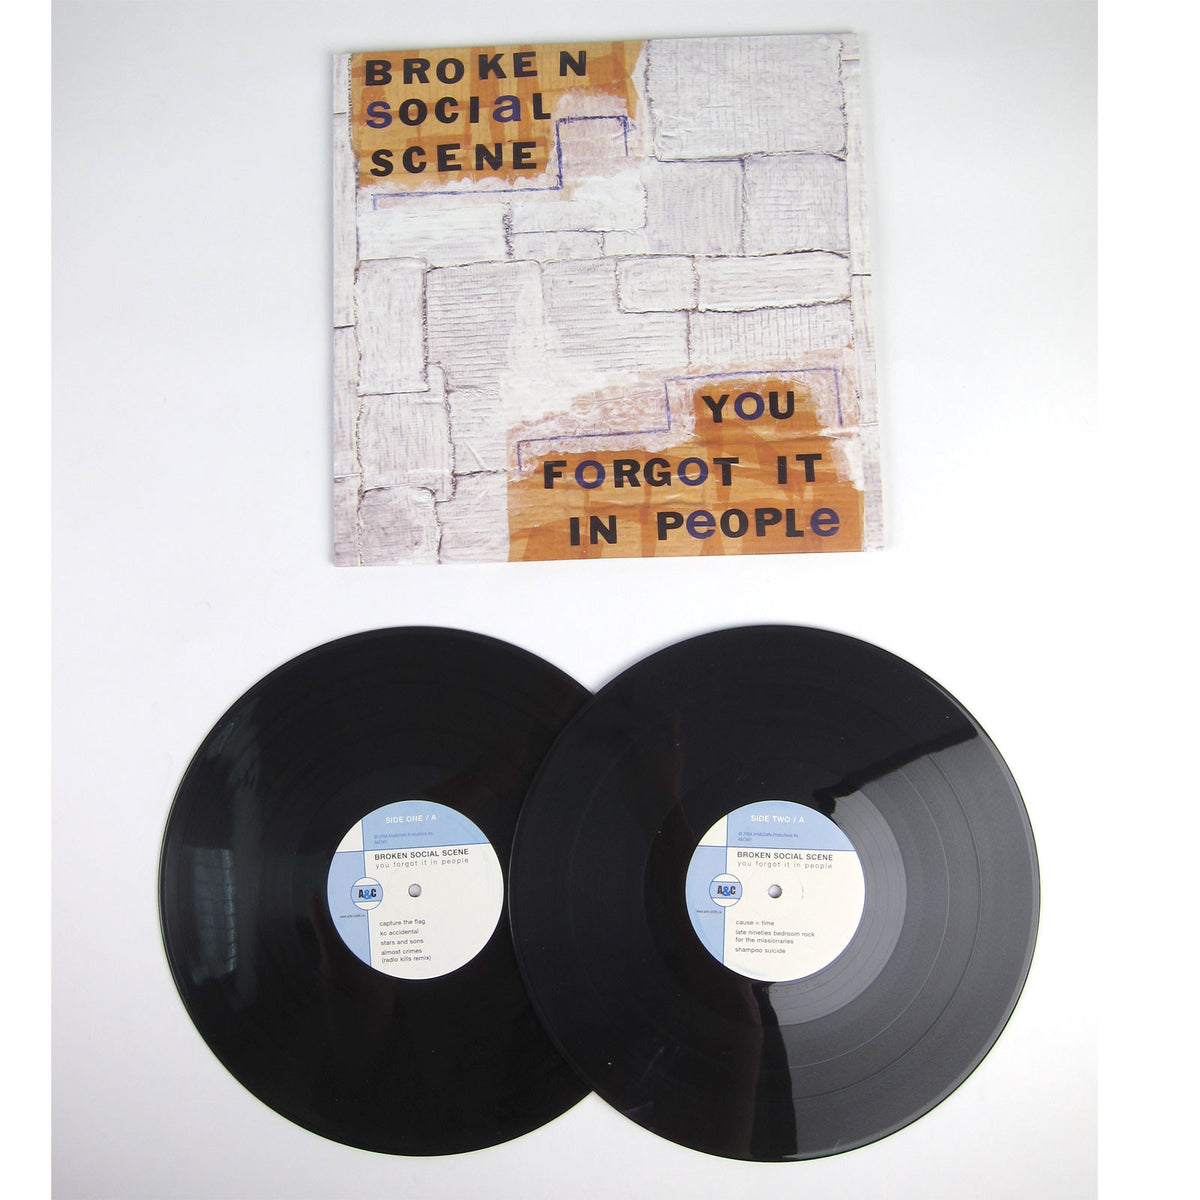 Broken Social Scene: You Forgot It In People (Colored Vinyl) Vinyl 2LP